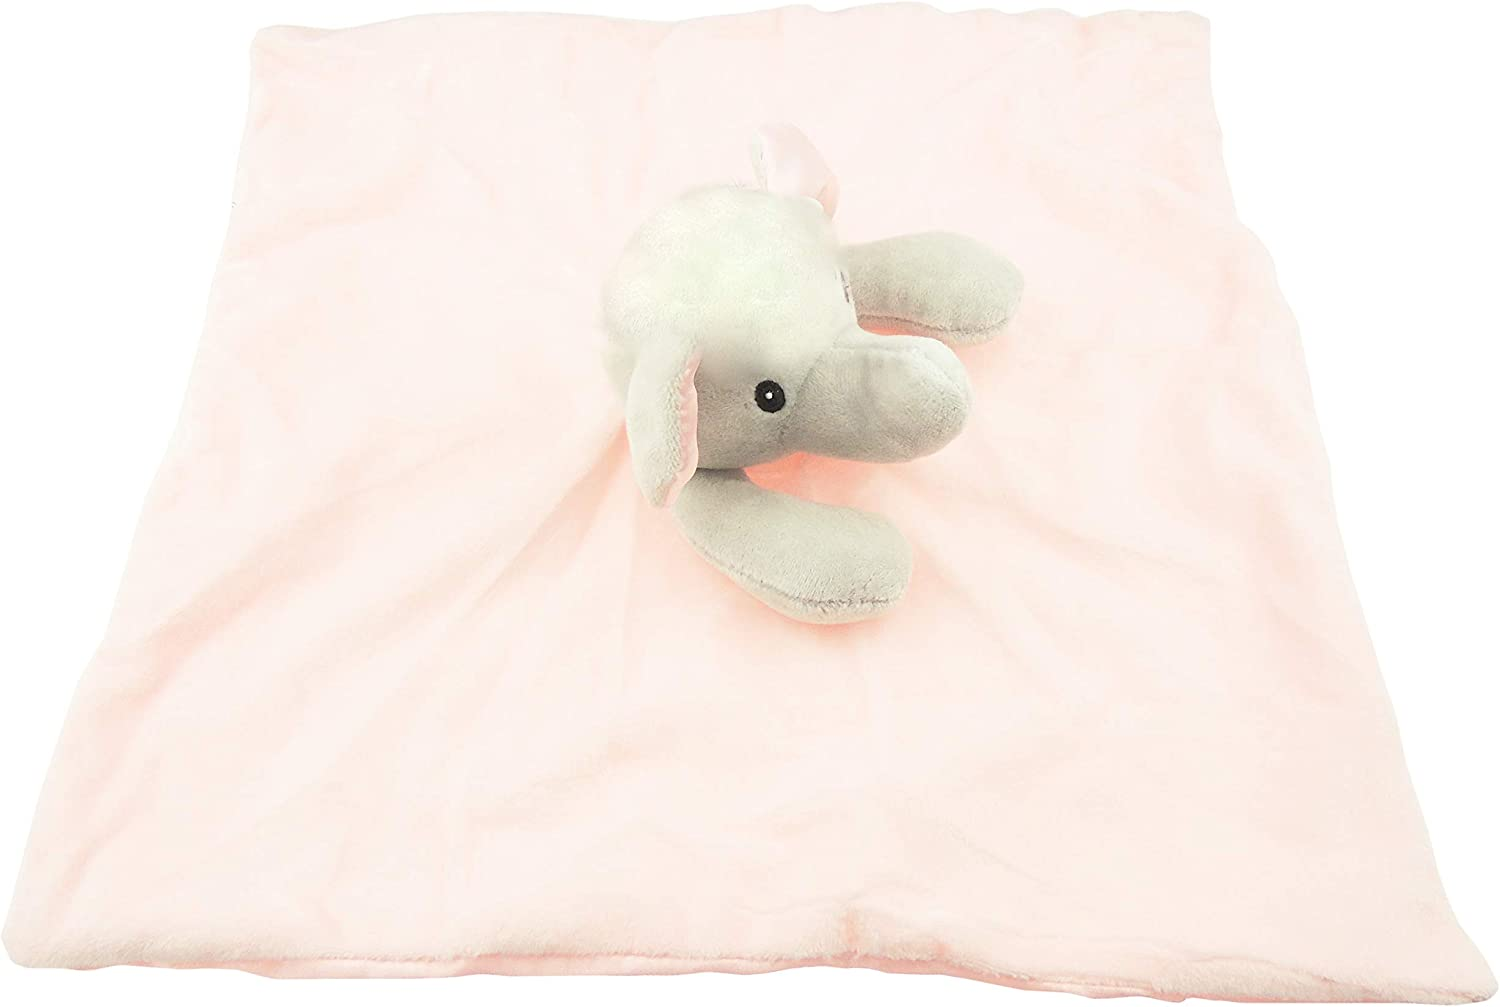 So soft and cuddly . Beautiful blanket in an elephant print in white gray and teal